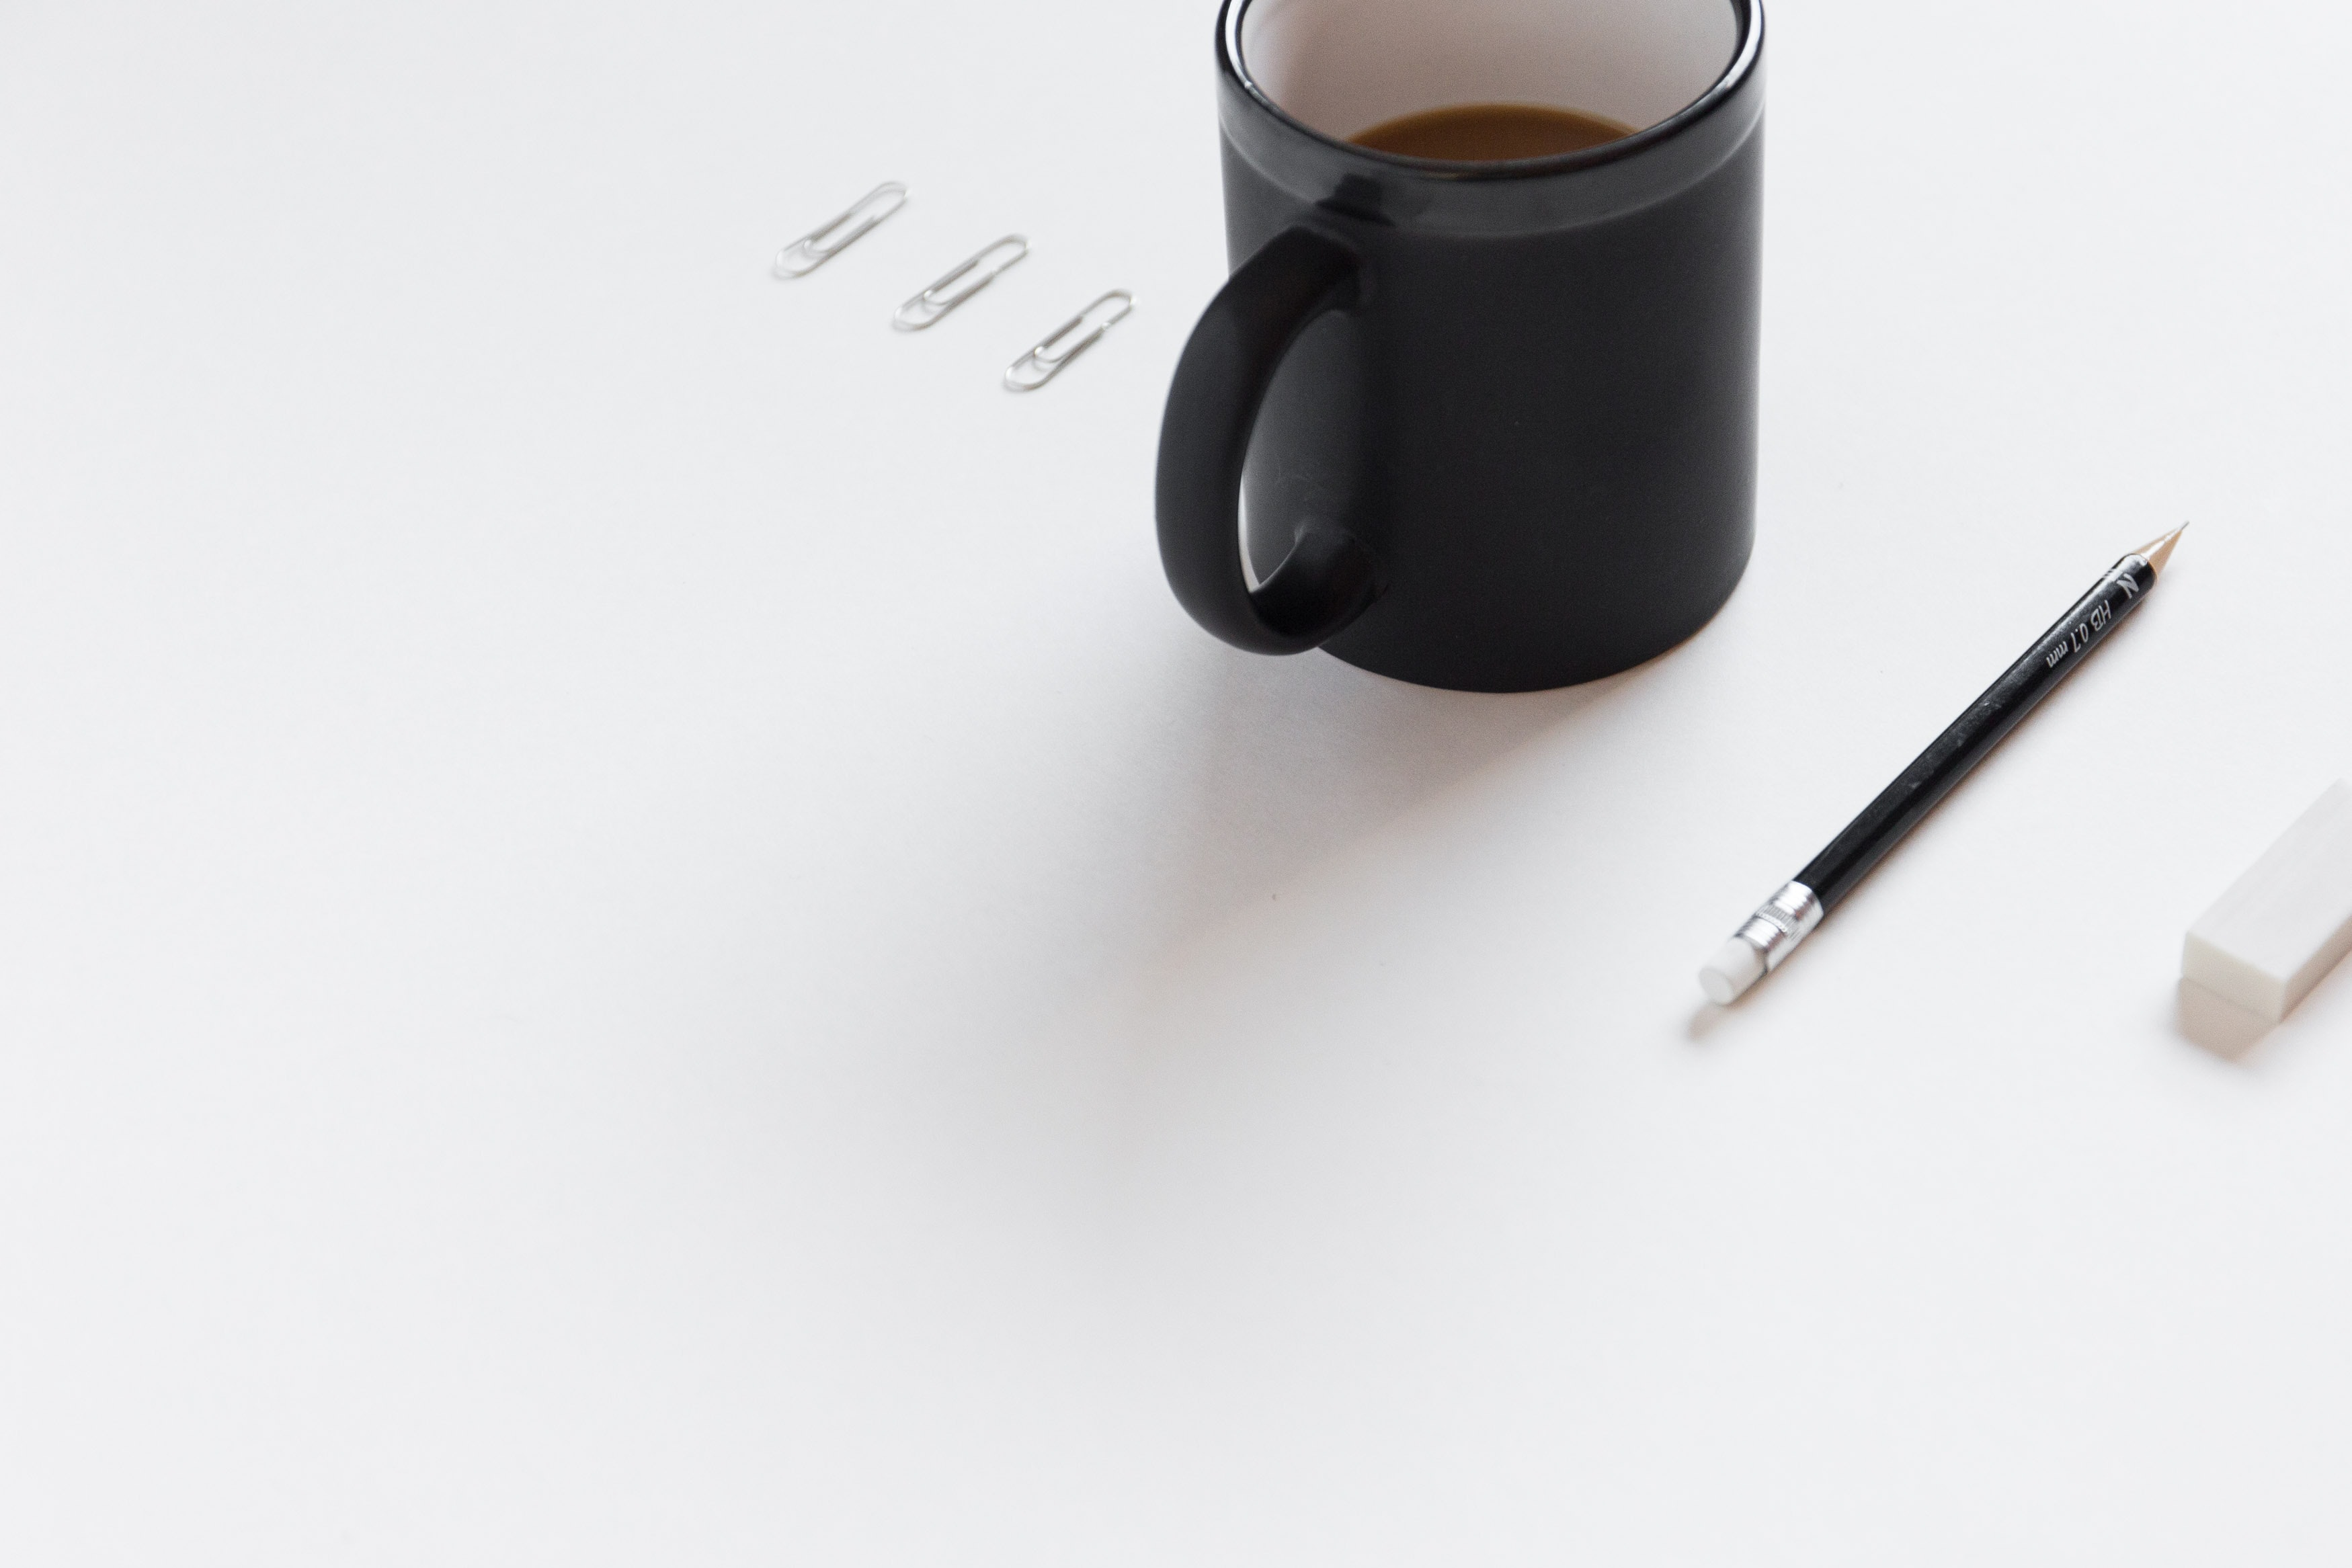 A pencil, an eraser and paper clips next to a cup of coffee